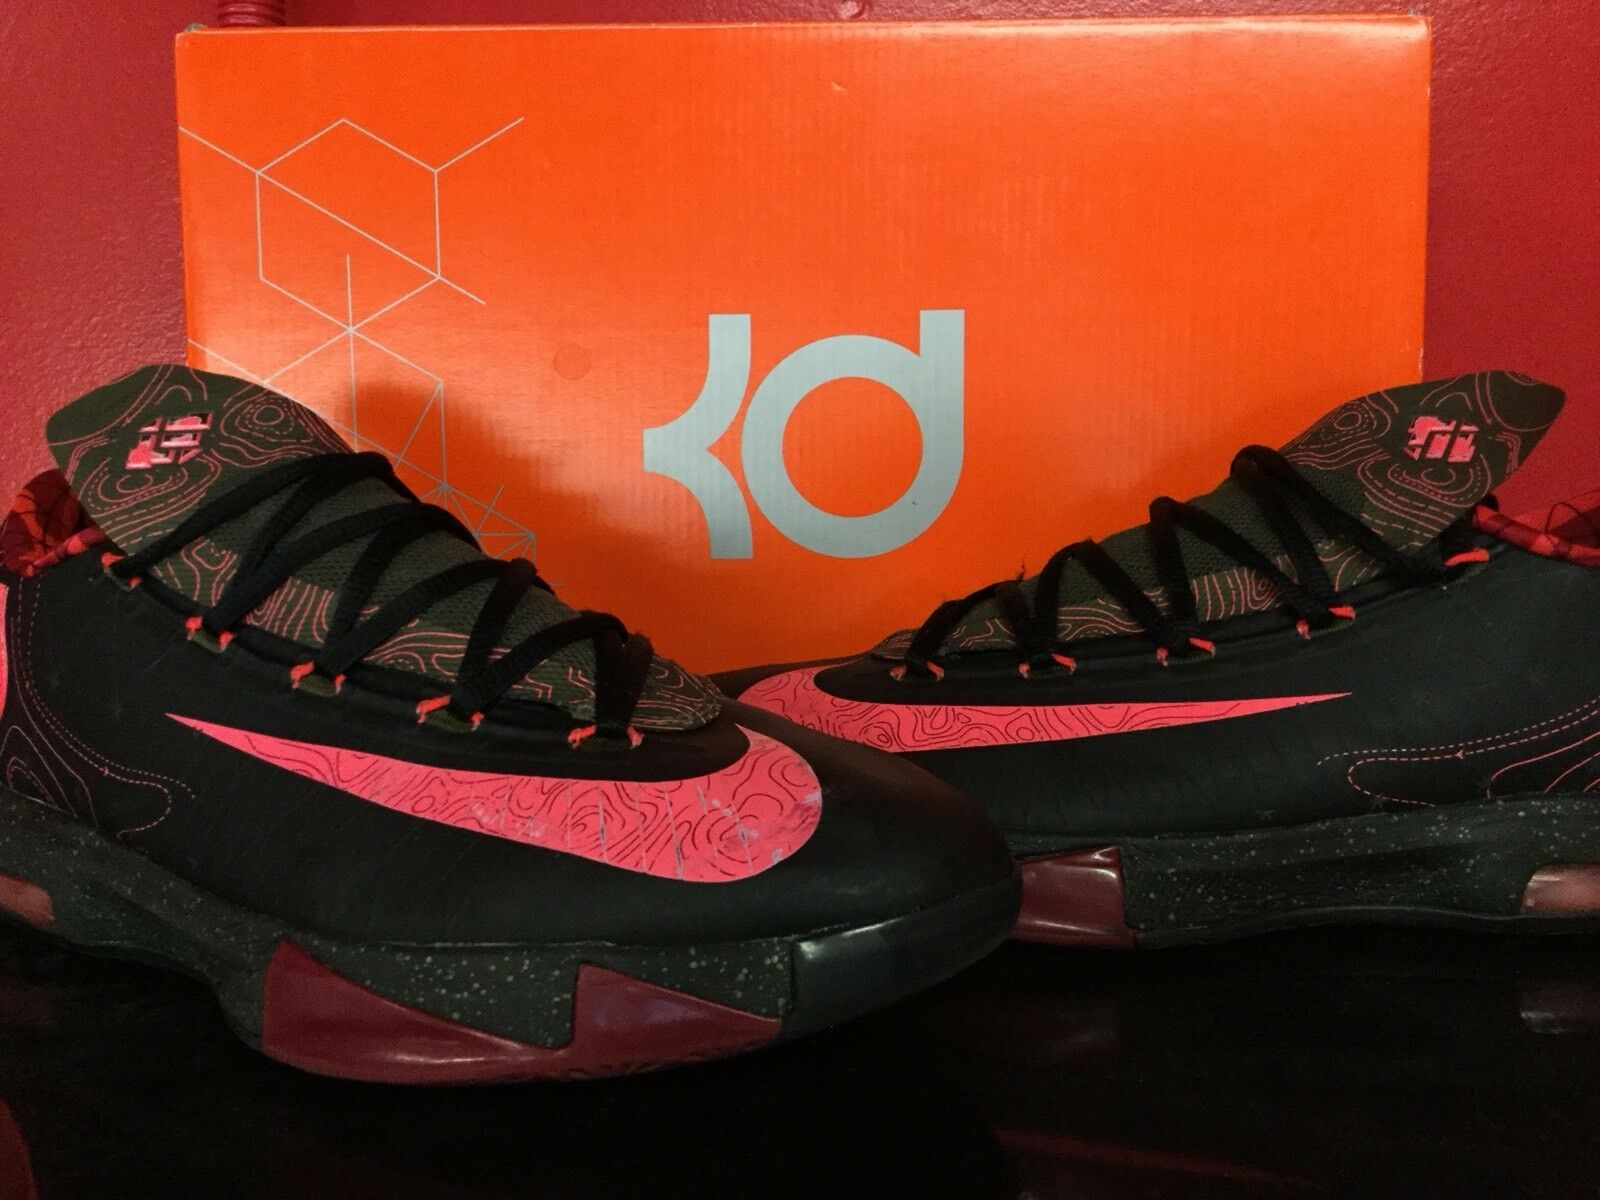 NIKE NIKE NIKE KD VI HOT PUNCH EDITION SZ 10 RARE b97234